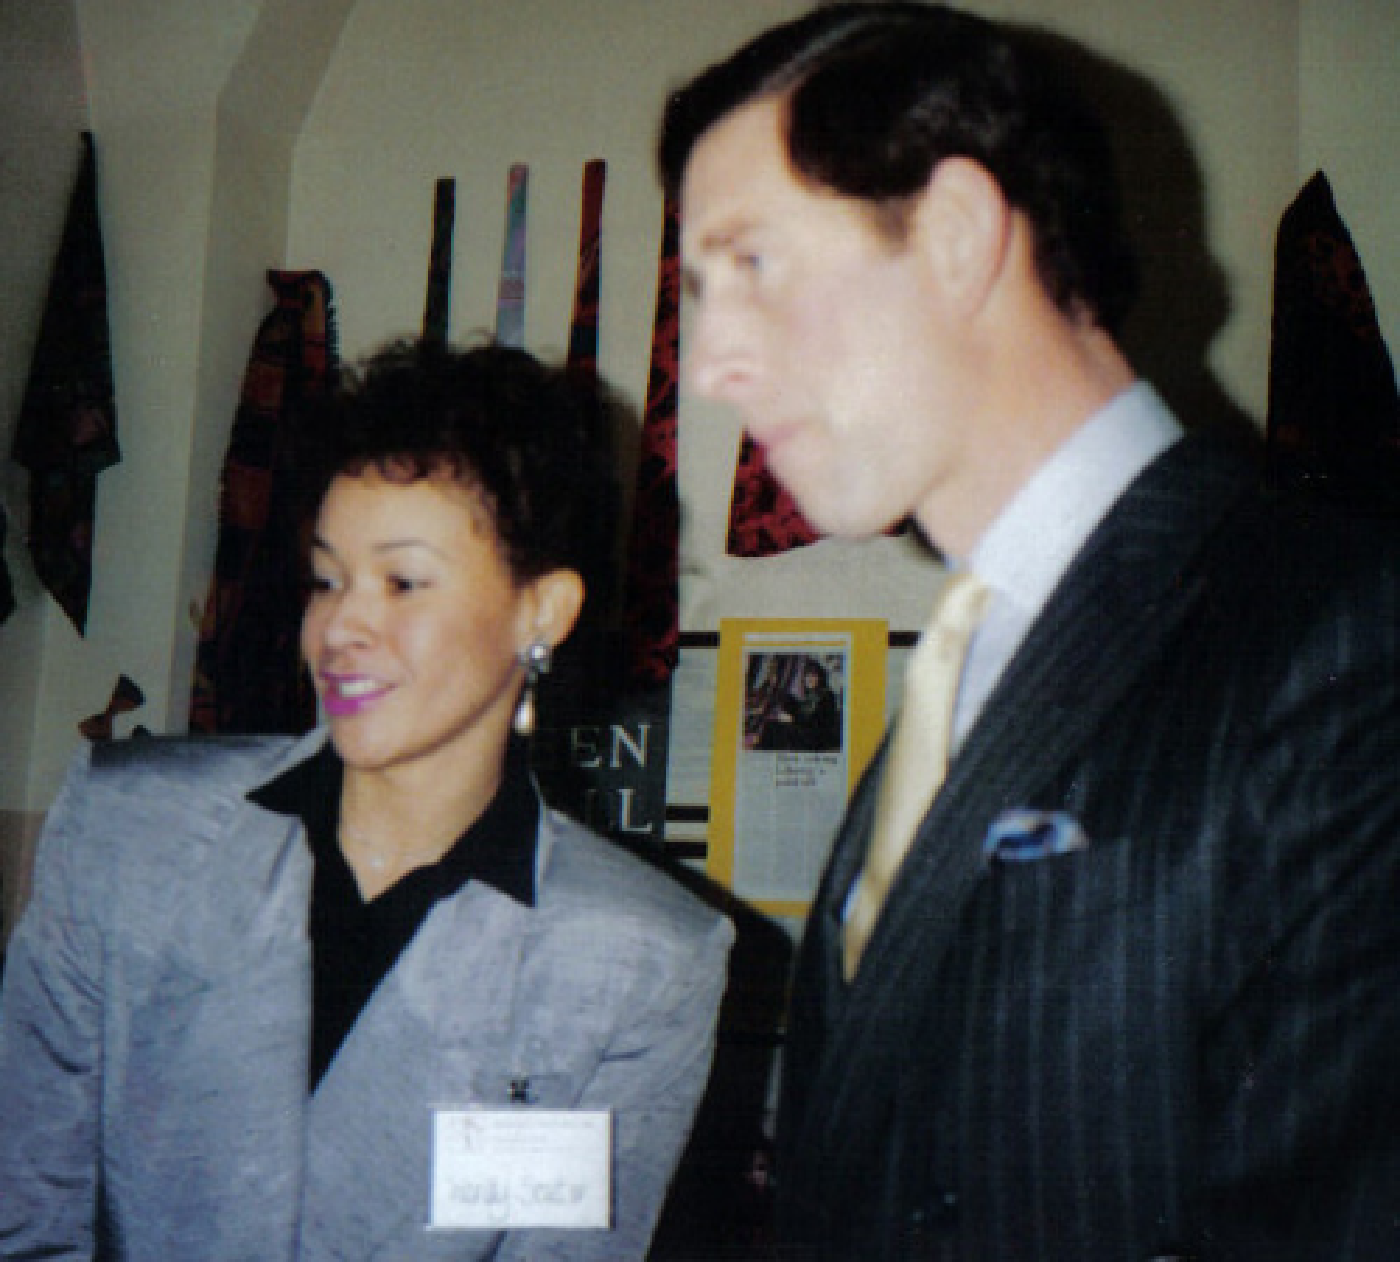 Wendy Souter with HRH Prince Charles at opening of OTC in 1988